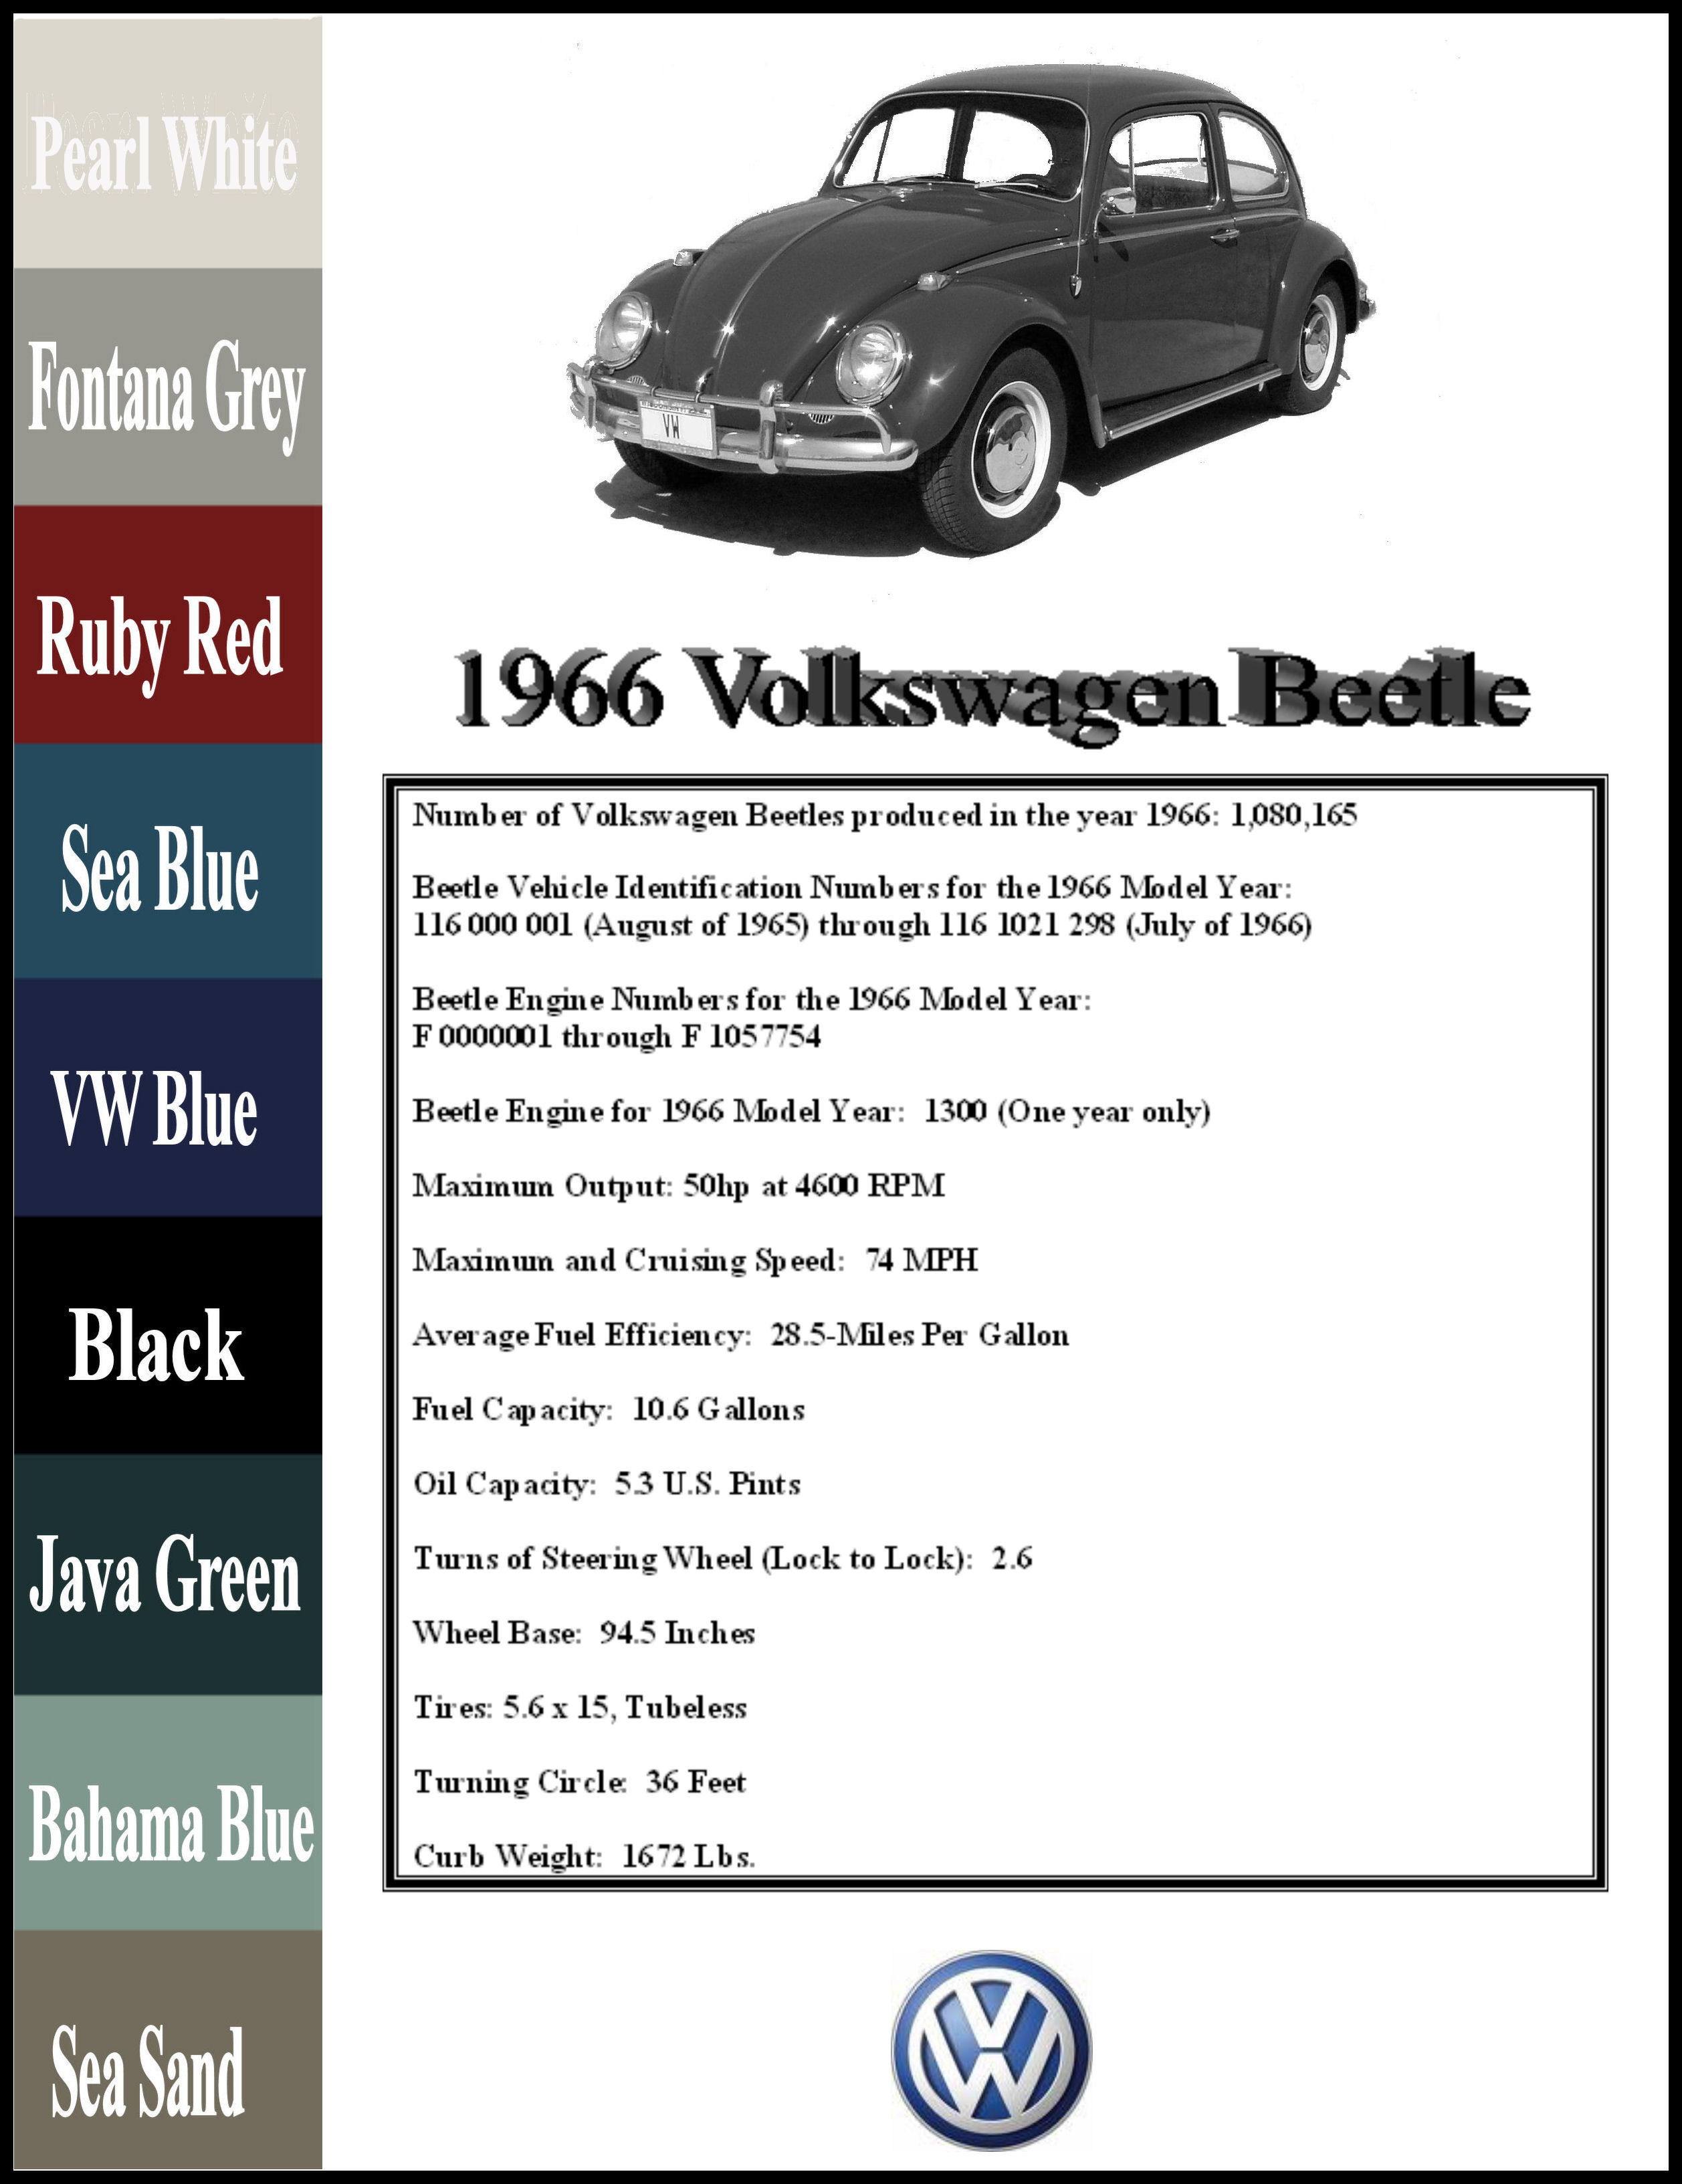 1966 VW Beetle Colors besides You Need To Enable Javascript together with The 1966 VW Beetle Forum    View Topic Frieda Is My 1966 Sea Sand as well VW Beetle Wiring Diagram also VW Beetle Rally Car. on the site for 1966 vw beetle owners and fans